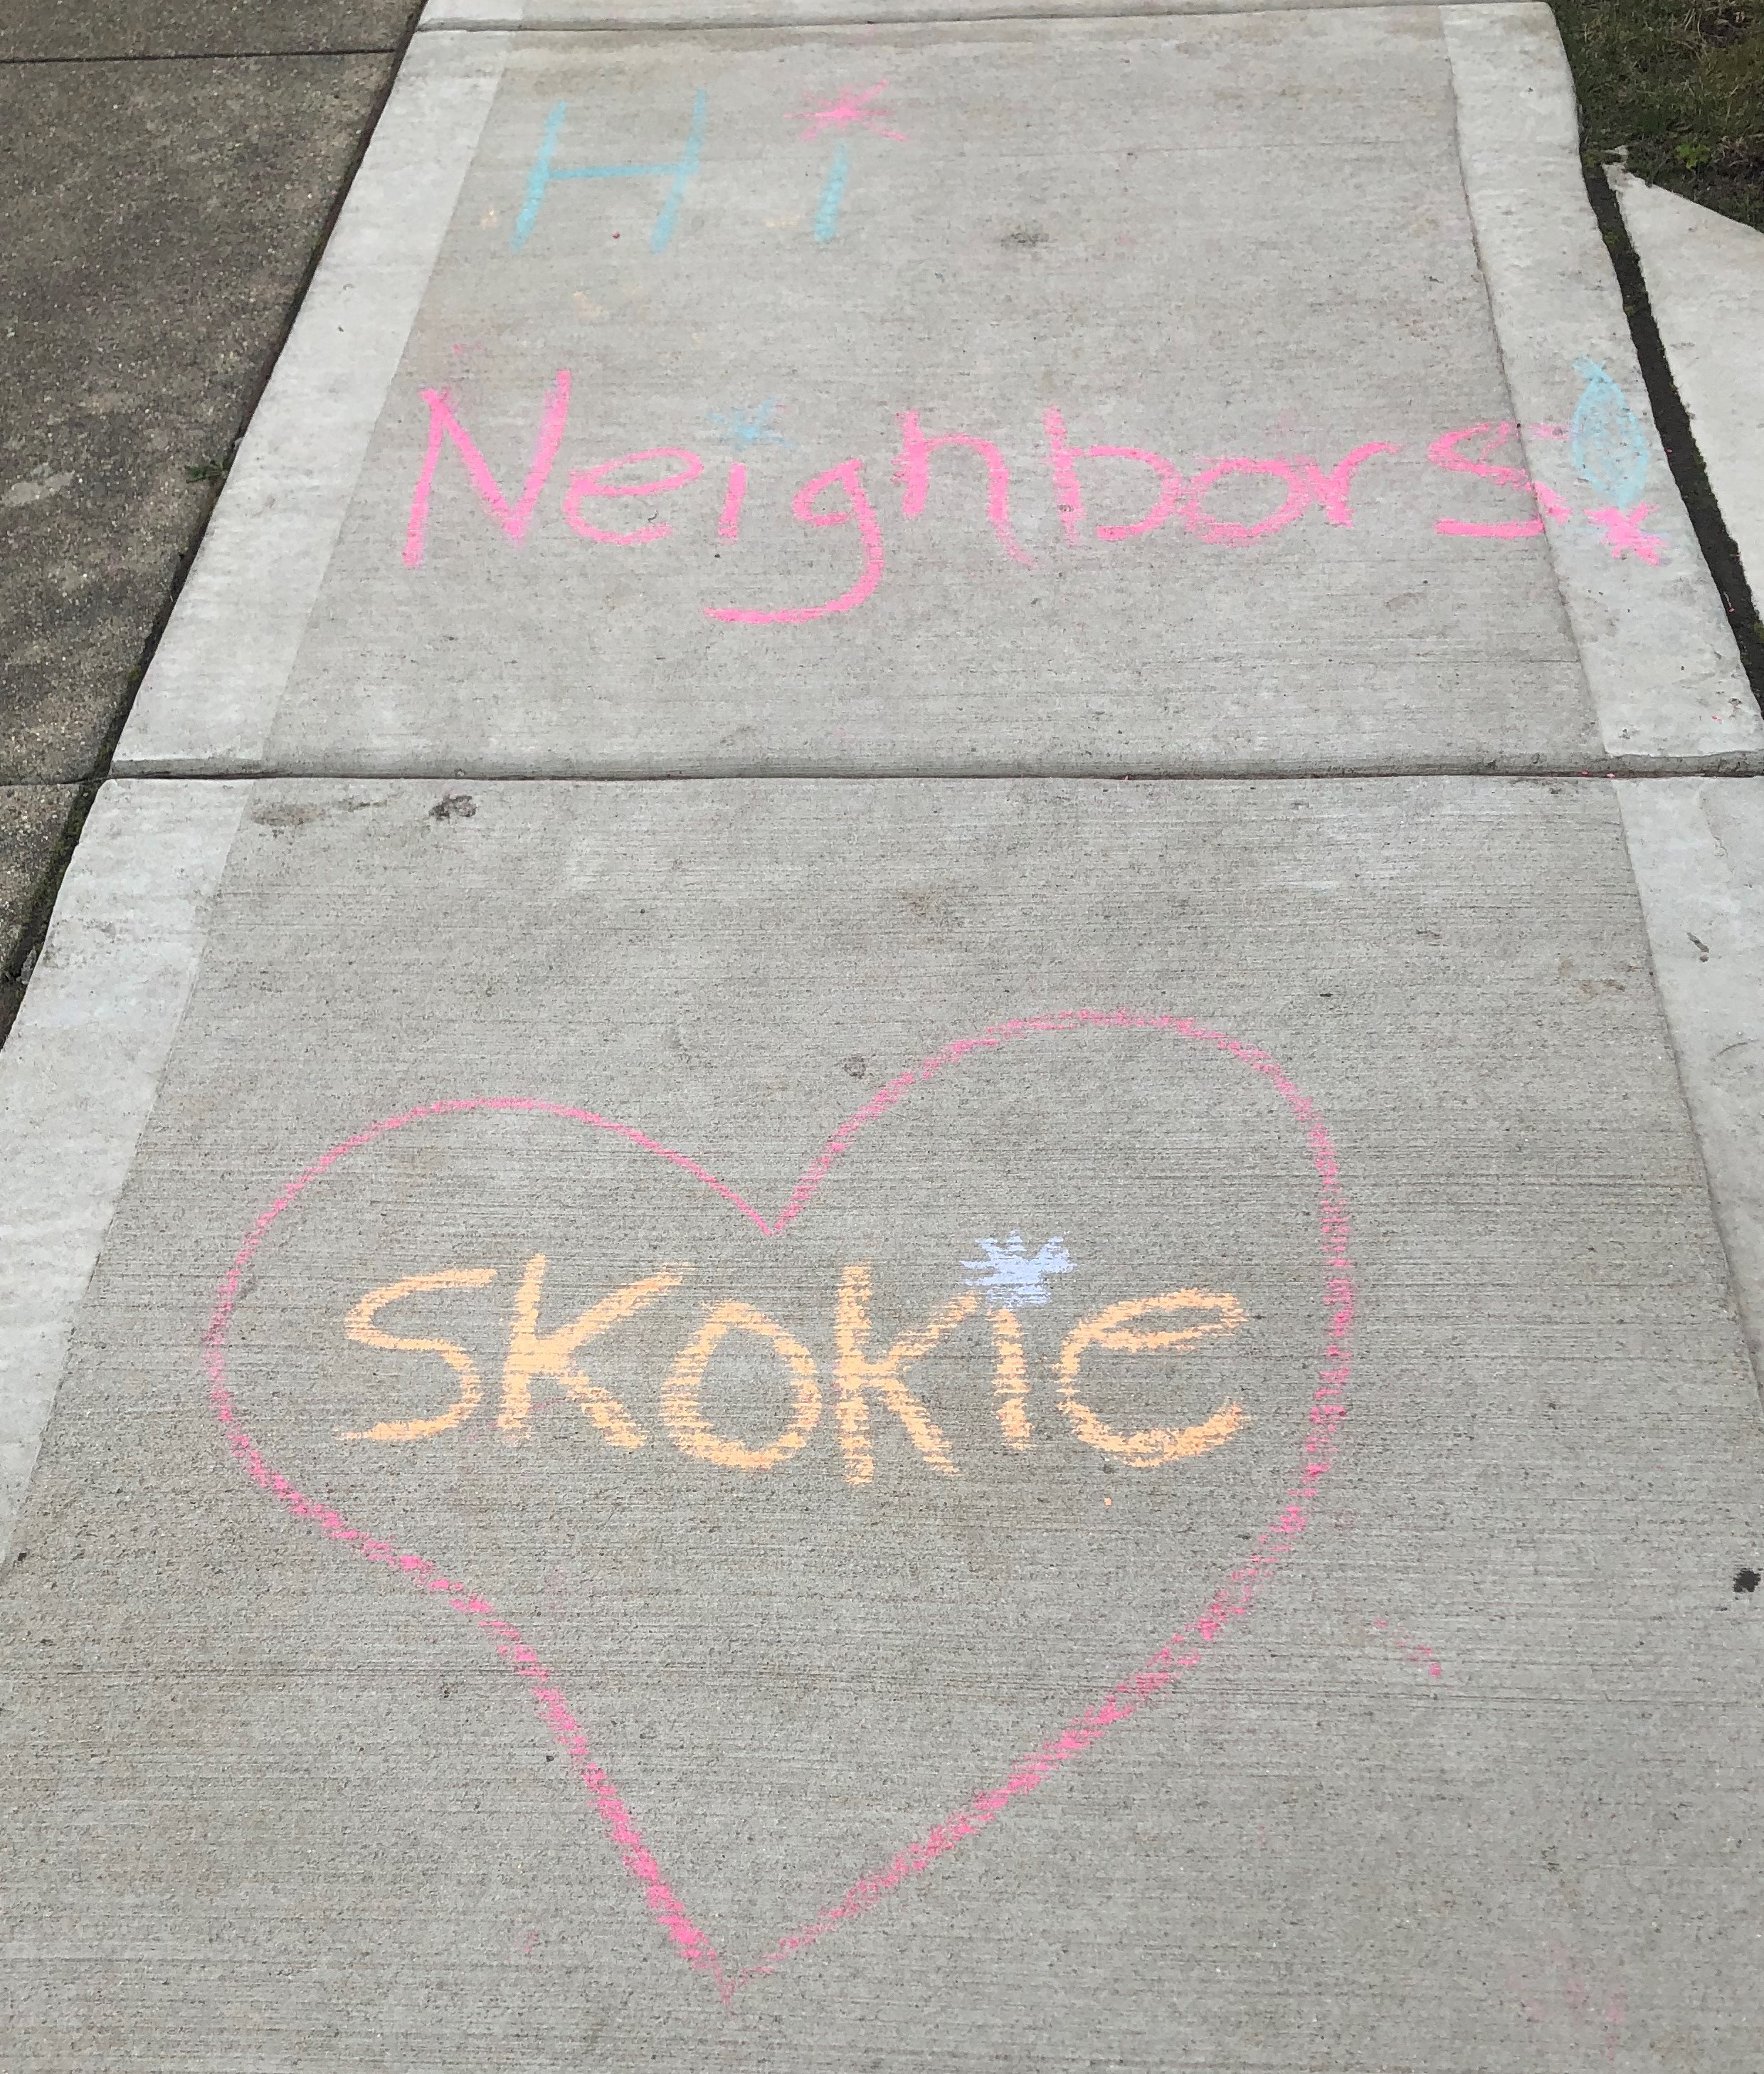 Skokie Spirit Chalk Drawing 1 March 26 (JPG)